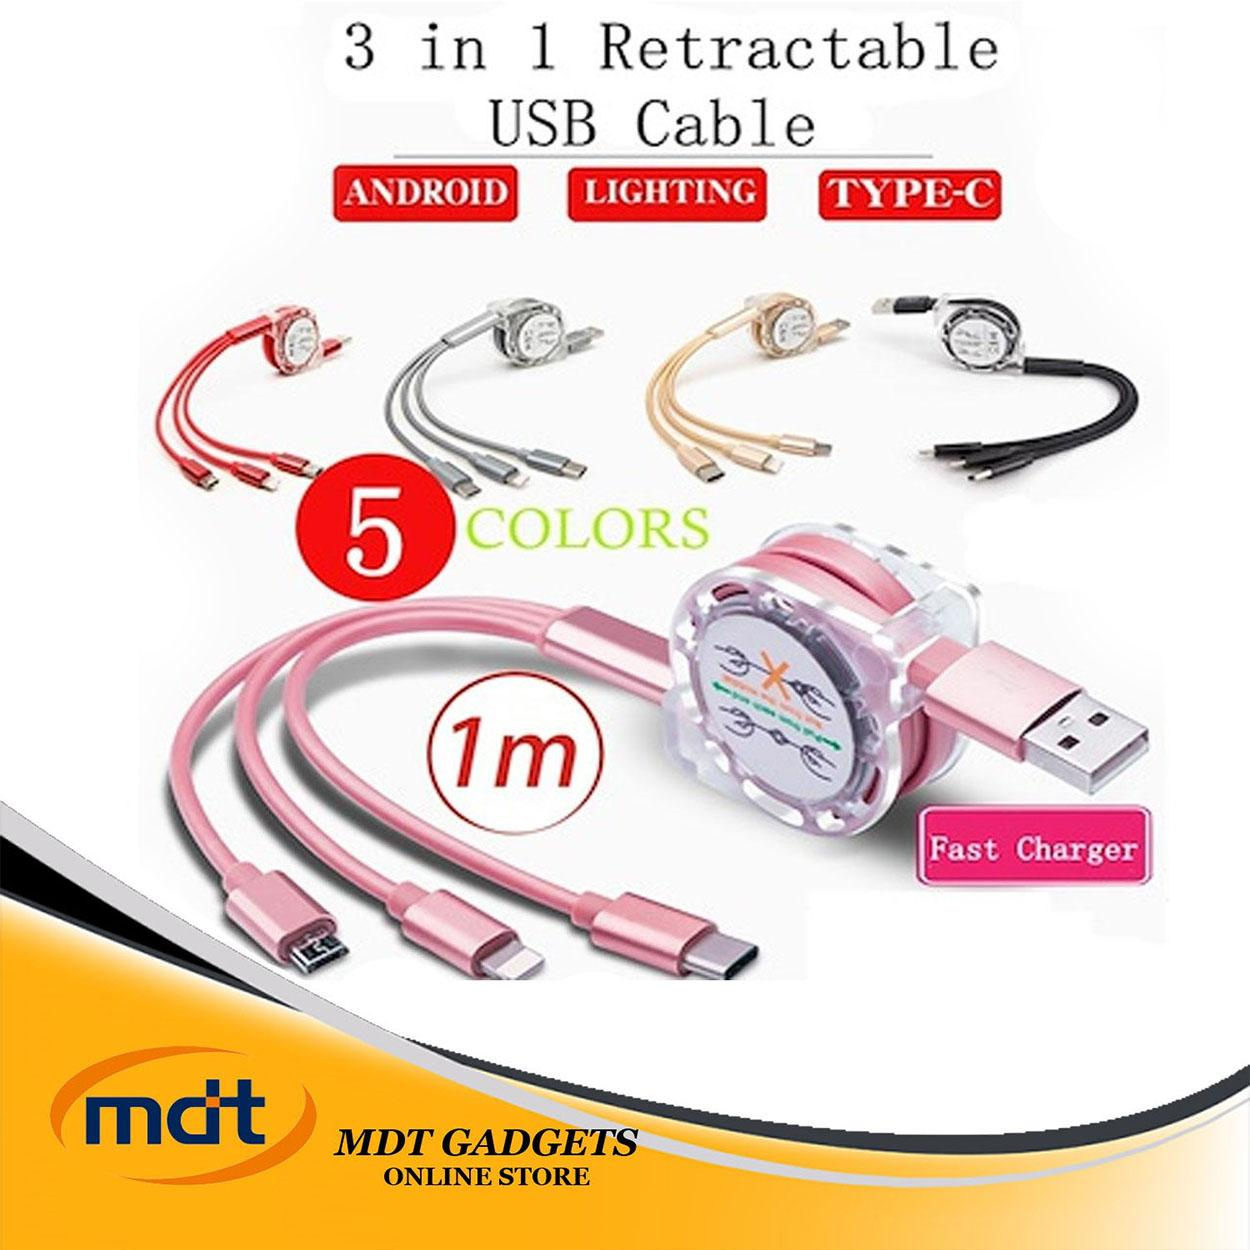 Retractable phone charger for Android/iOS/type c (COLOR MAY VARY)